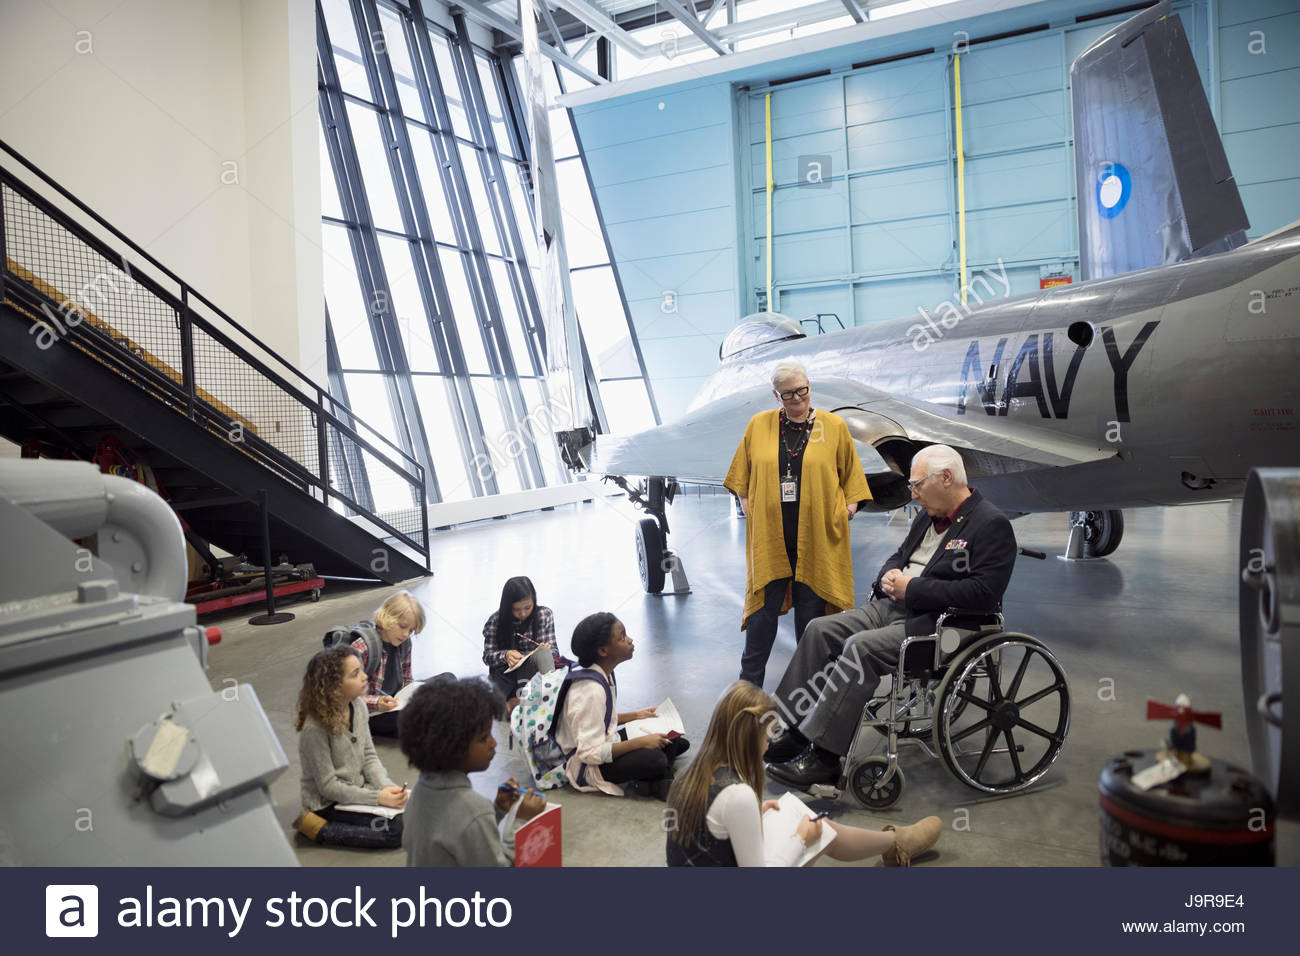 Docent and war veteran talking to students on field trip at Naval airplane in war museum hangar - Stock Image